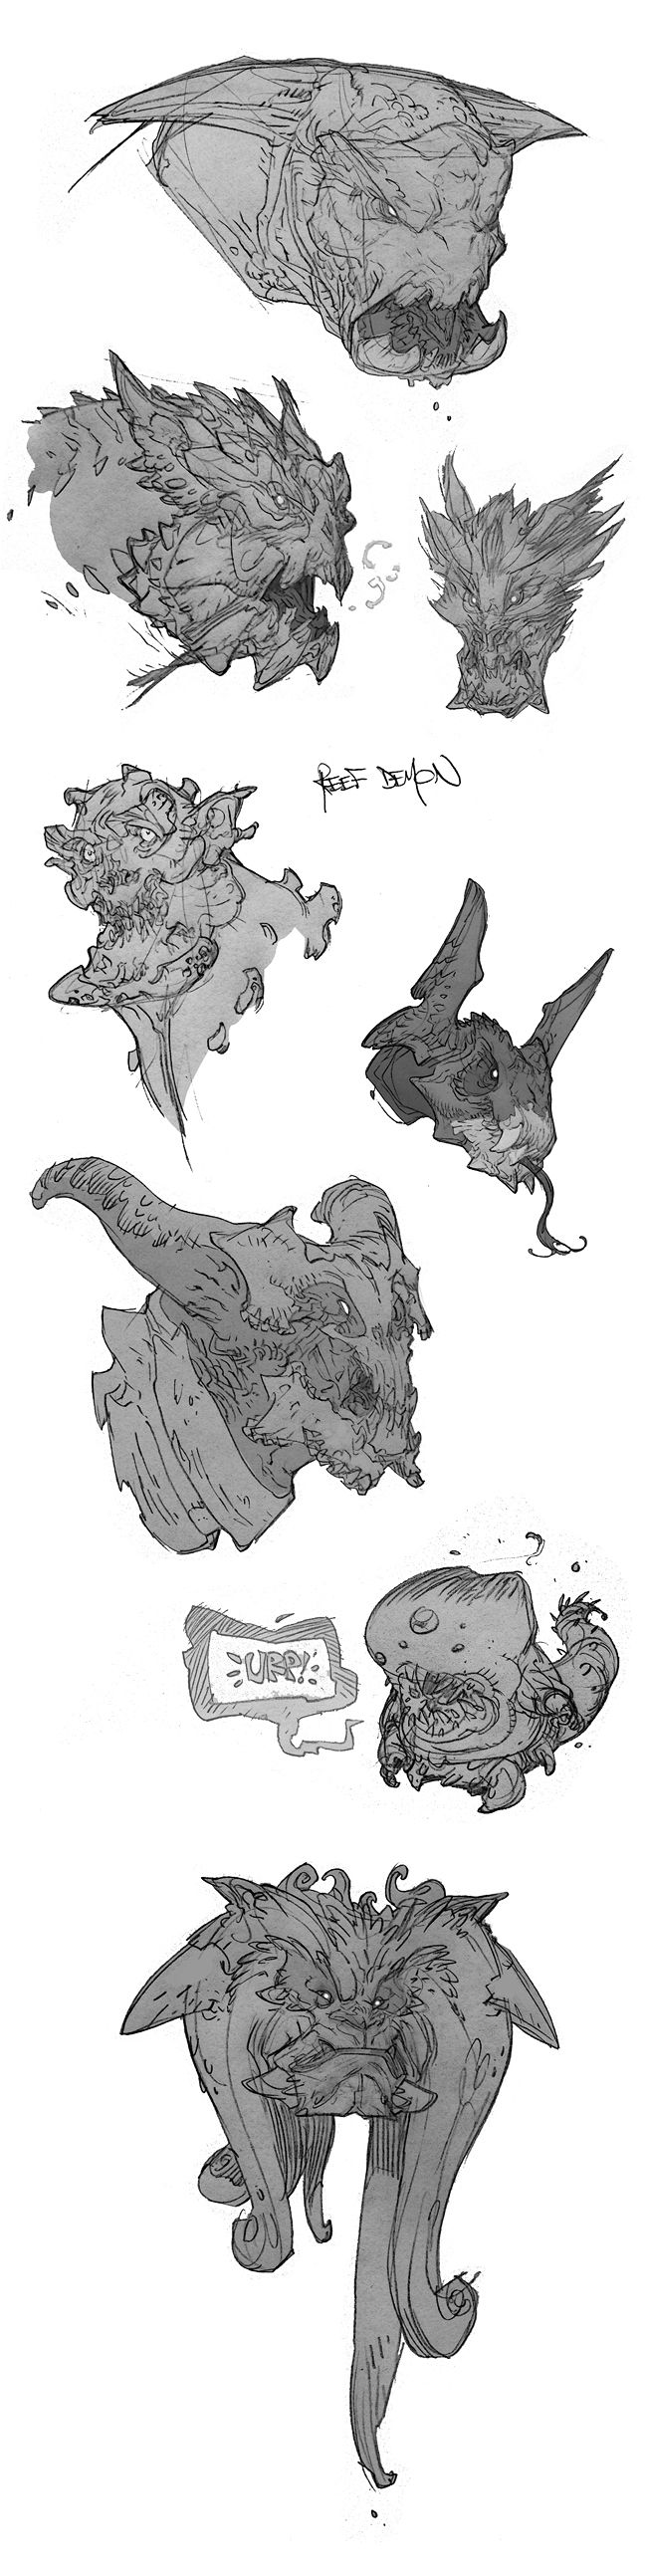 ★ || CHARACTER DESIGN REFERENCES (https://www.facebook.com/CharacterDesignReferences & https://www.pinterest.com/characterdesigh) • Love Character Design? Join the #CDChallenge (link→ https://www.facebook.com/groups/CharacterDesignChallenge) Share your unique vision of a theme, promote your art in a community of over 30.000 artists! || ★